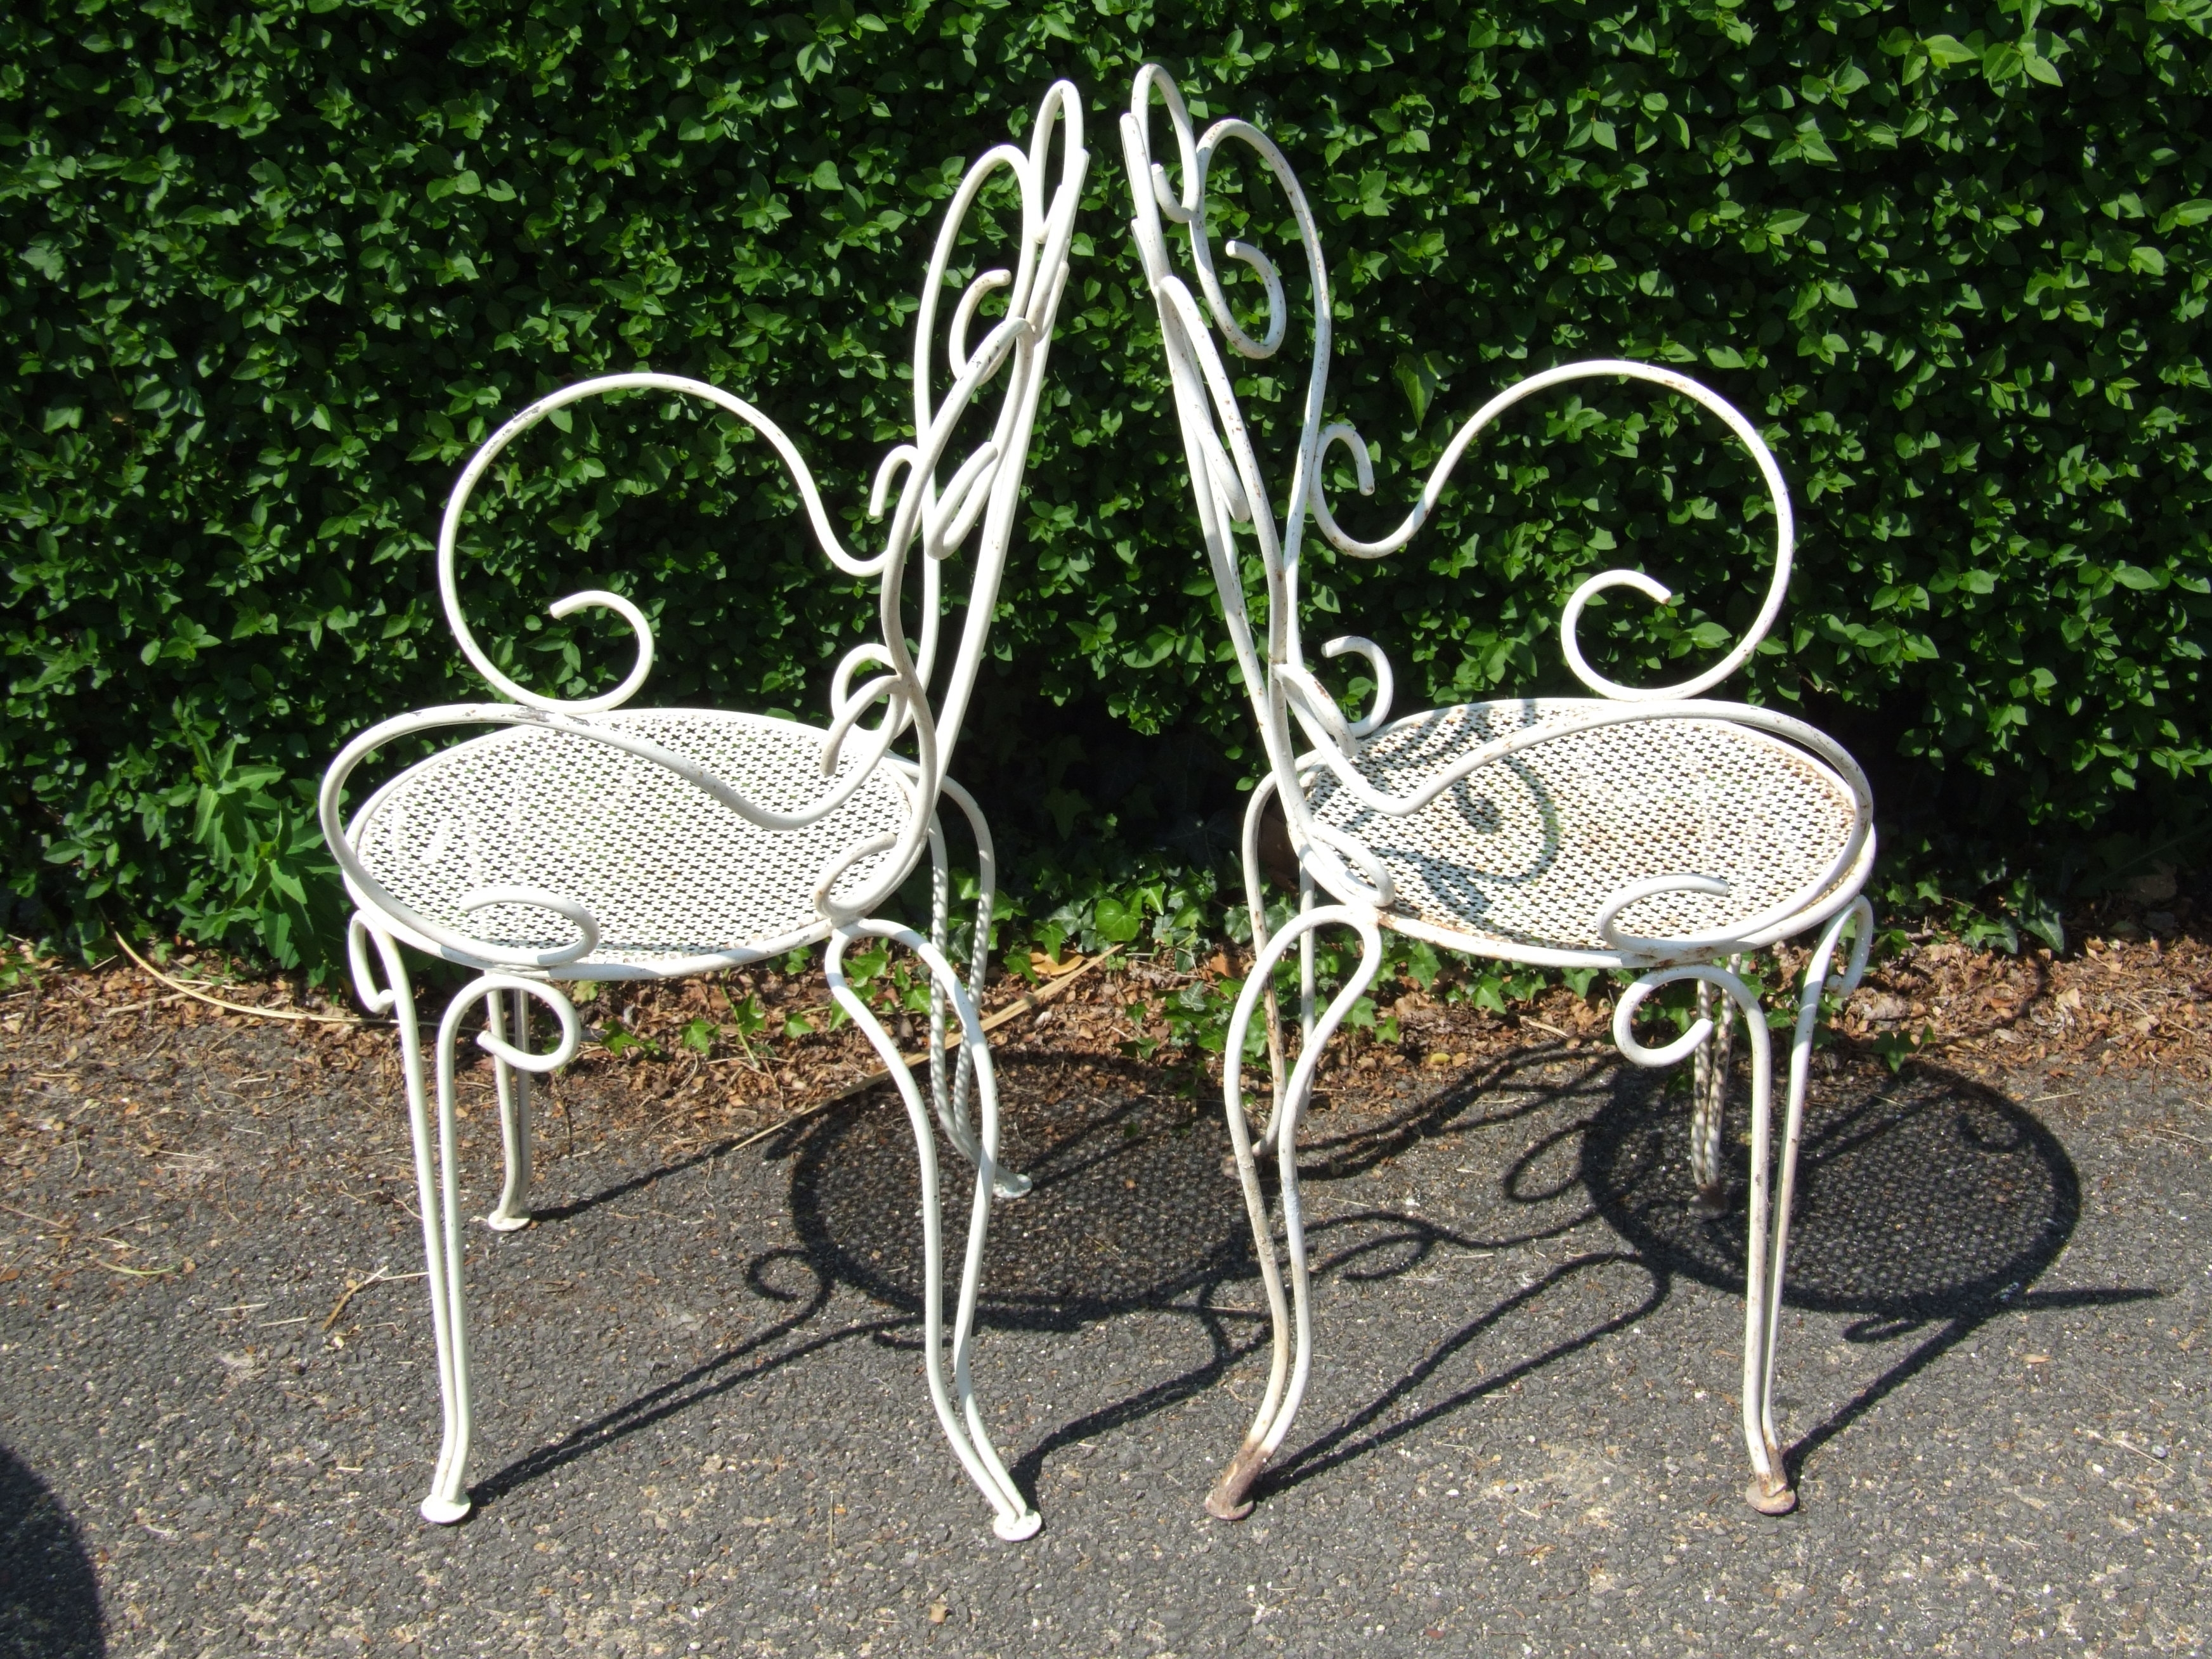 Vintage Patio Umbrellas For Sale Regarding Famous Chair (View 12 of 20)